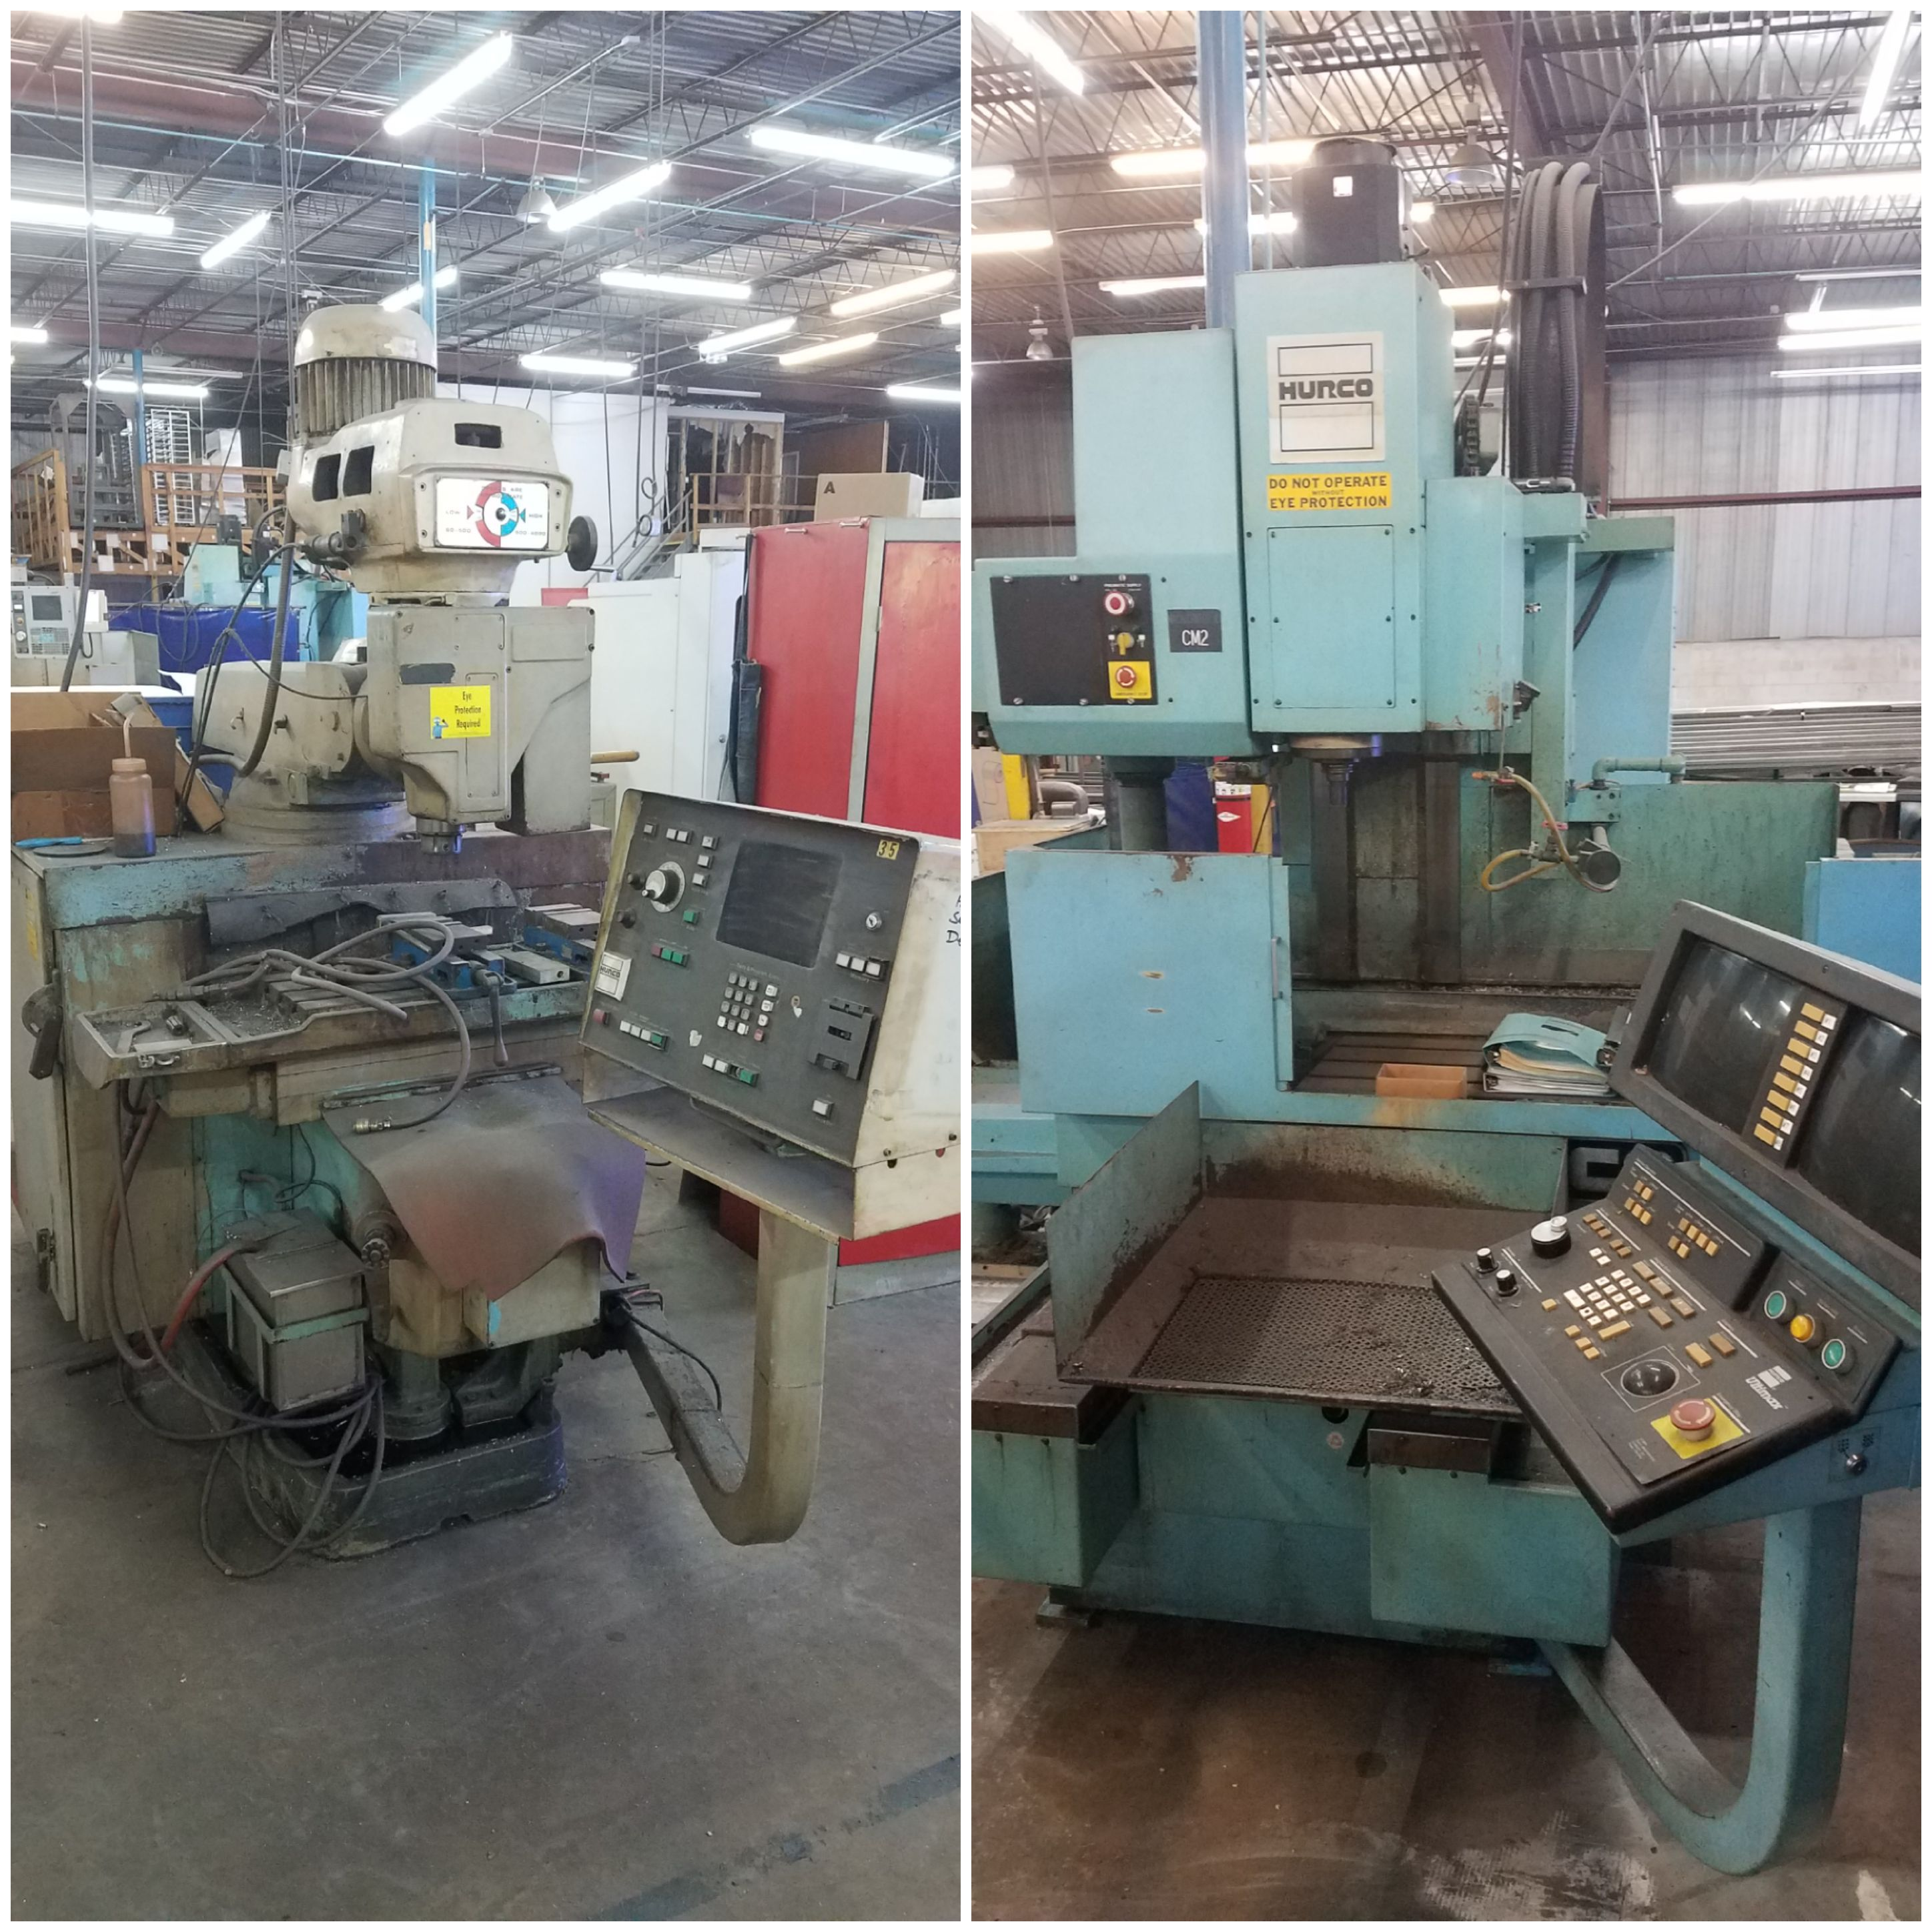 Cnc mills free to a good home we have two old hurco